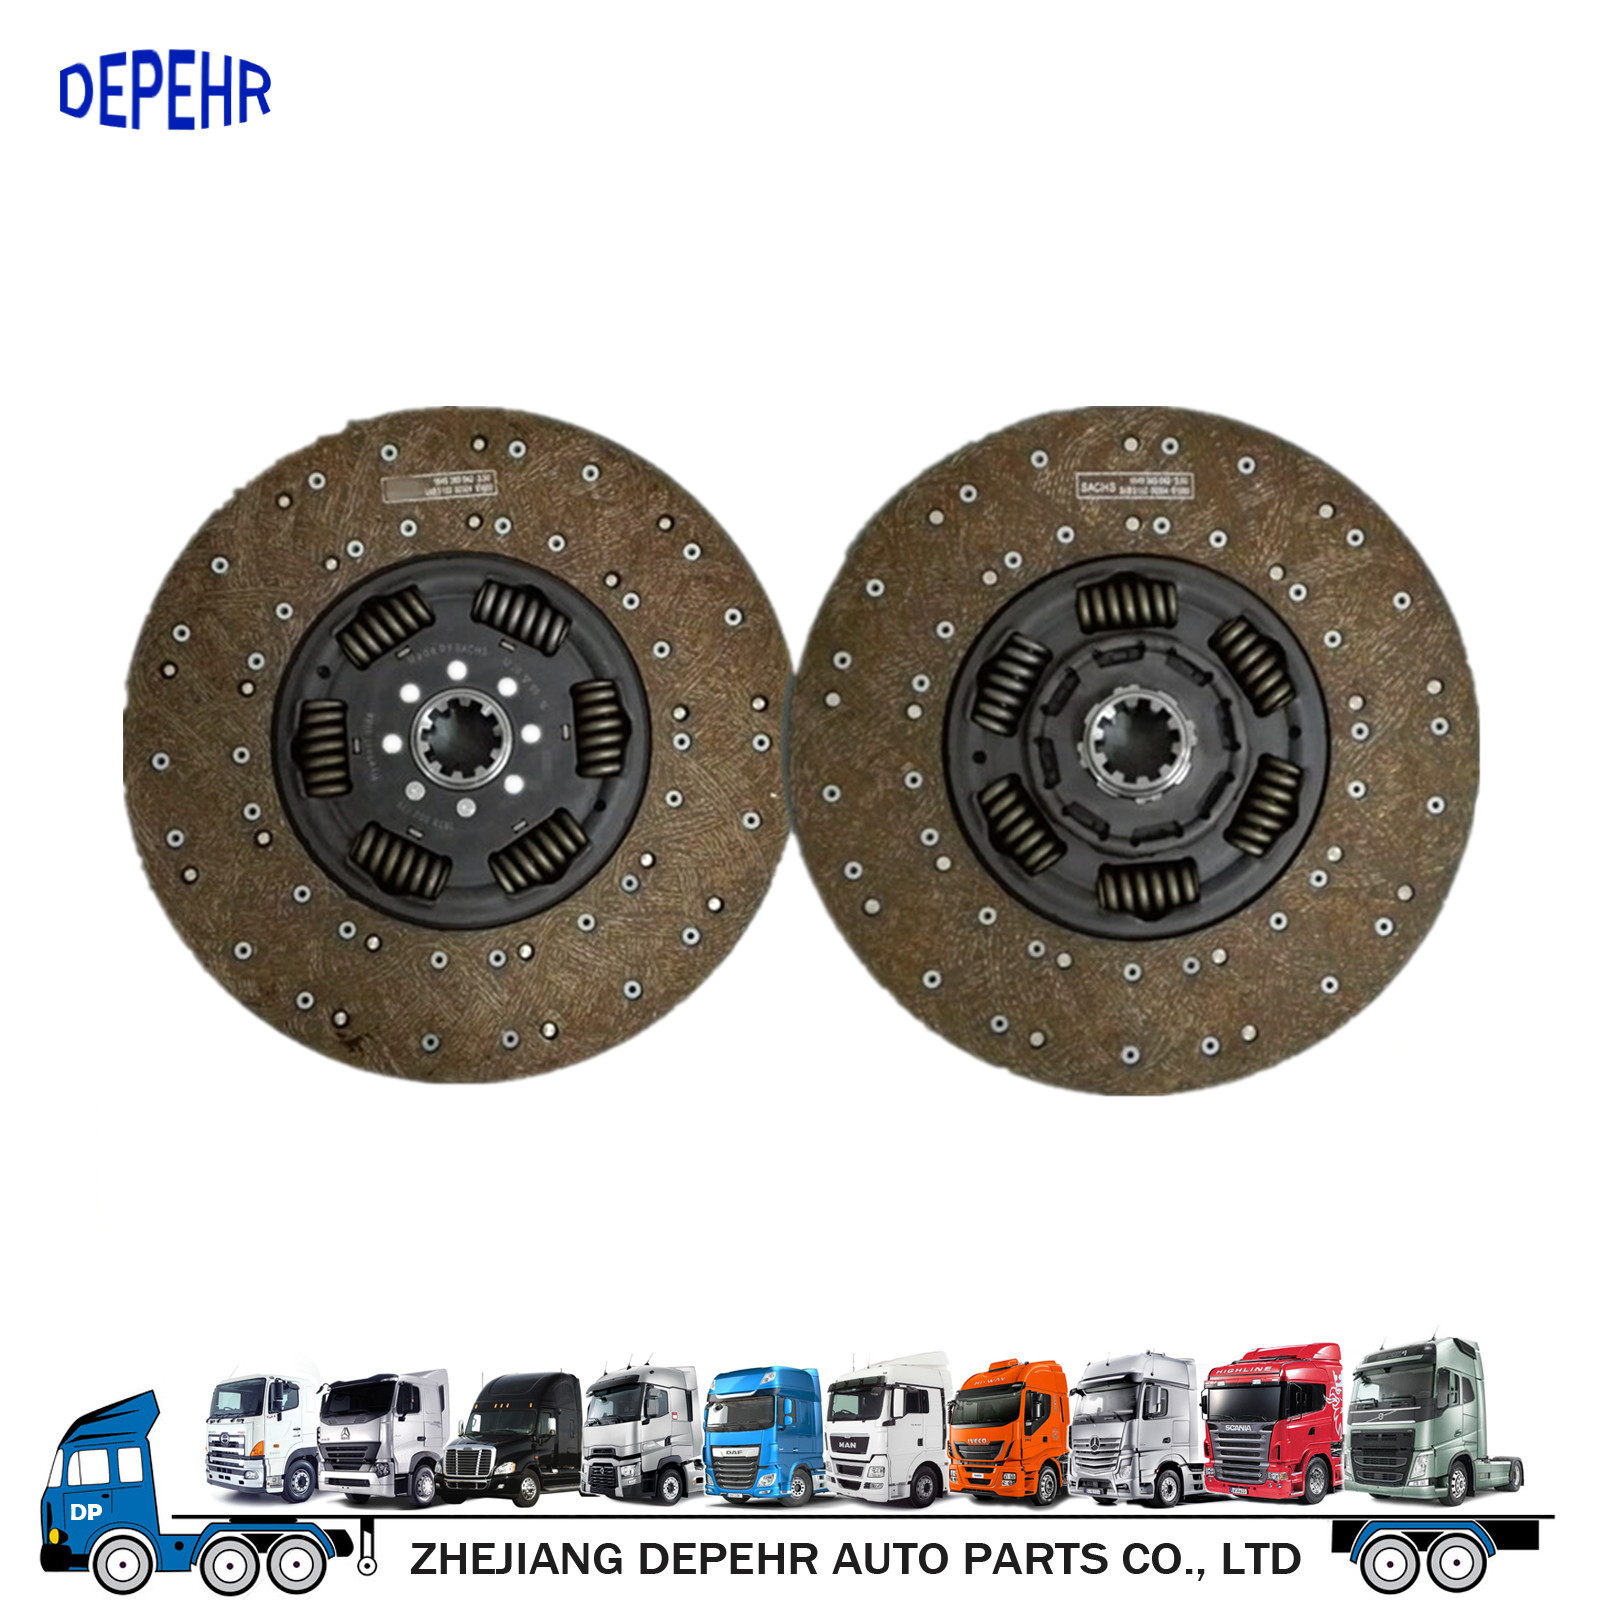 OEM 1878002139 Heavy Duty European Tractor Clutch Disc MAN F2000 Truck Clucth Friction Plate